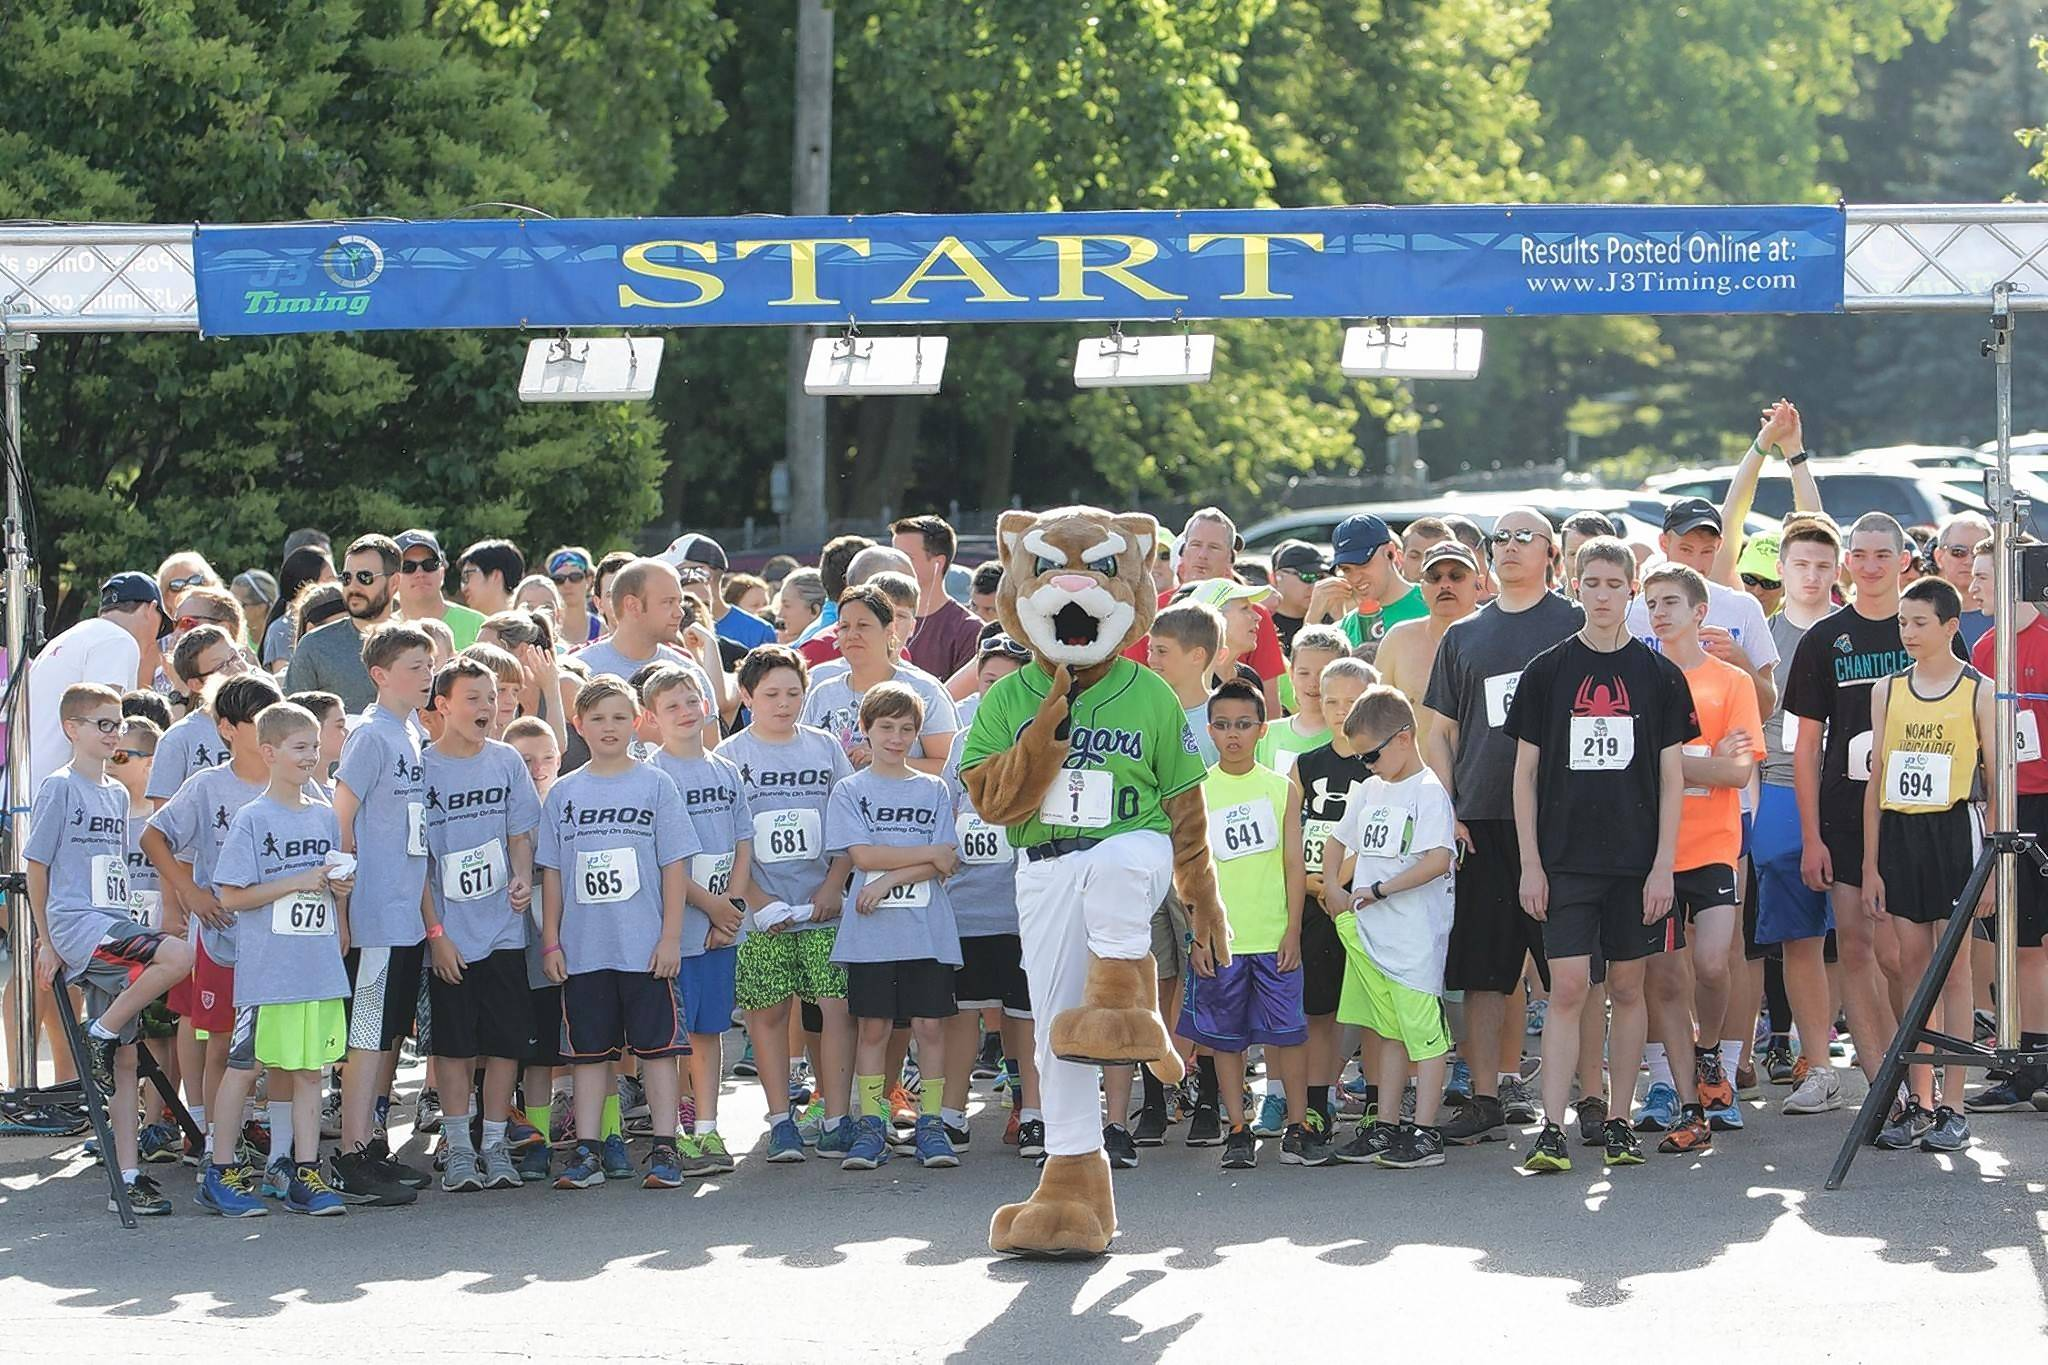 Ozzie, the mascot for the Kane County Cougars, leads off the sixth annual 5K run/walk June 3, dedicated to first responders. A total of $2,000 was donated to local police and fire departments.